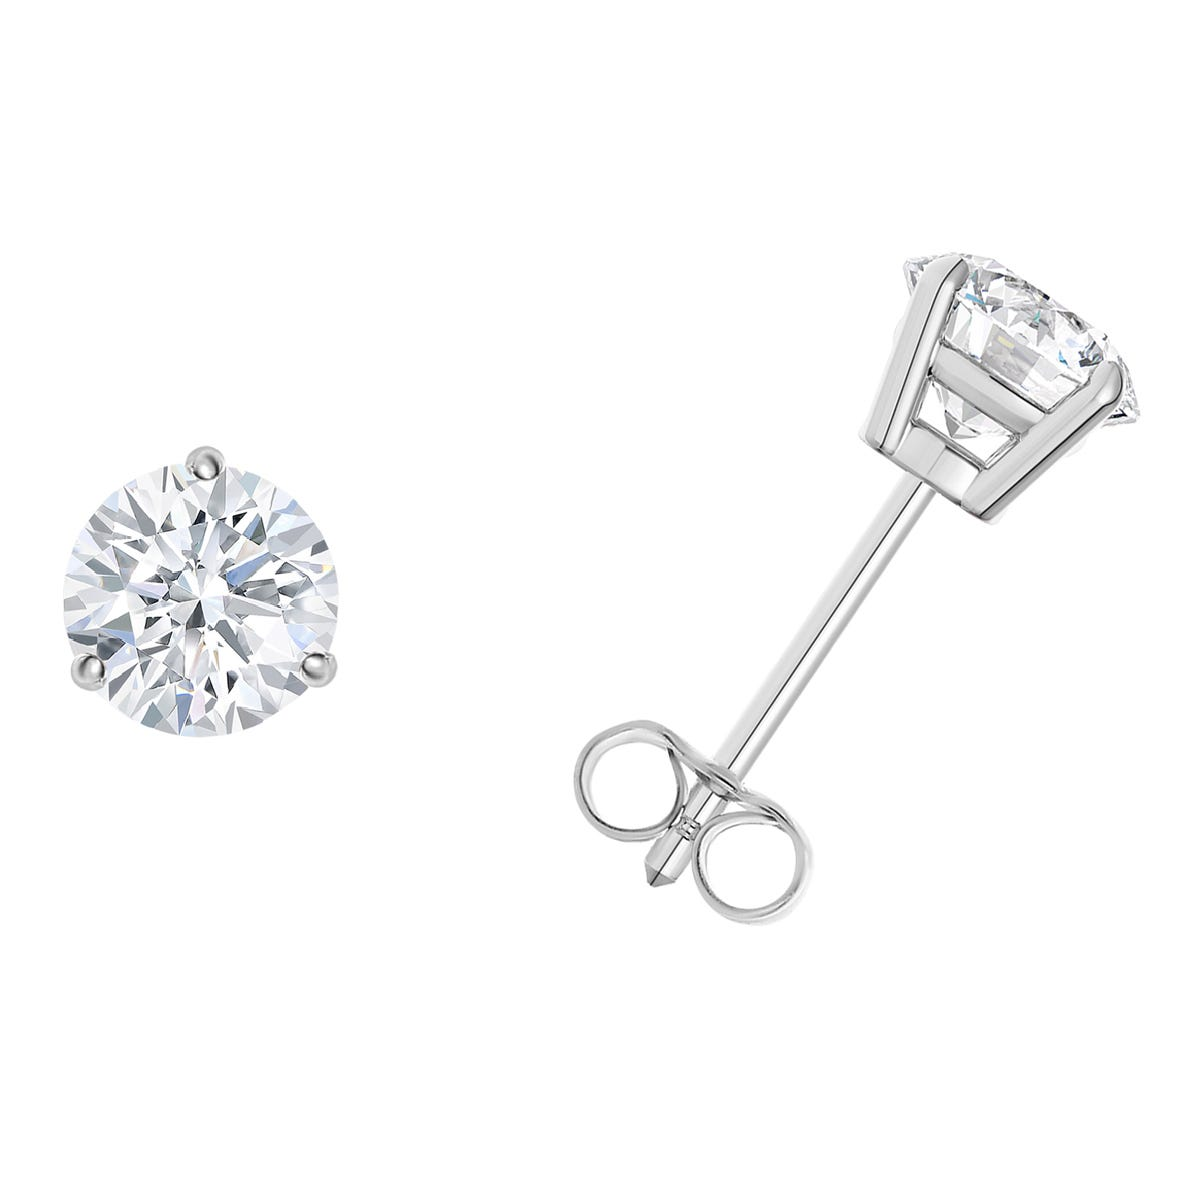 1/3 CTTW Round Diamond Solitaire Stud Earrings in 14K White Gold 3-Prong IGI Certified I2